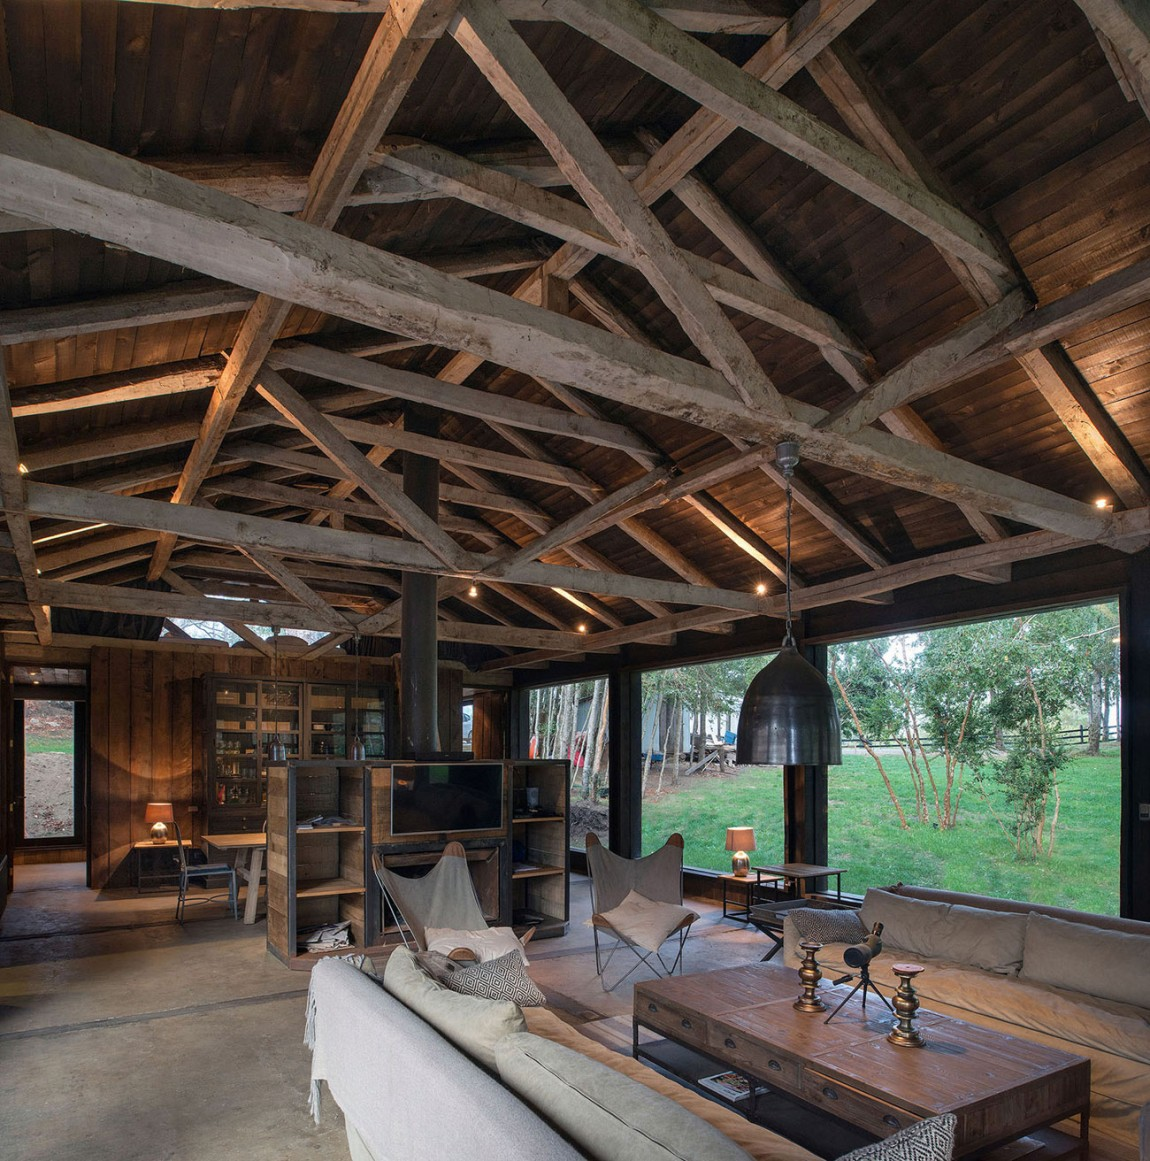 summerhouse in Chile with wood-burning stove